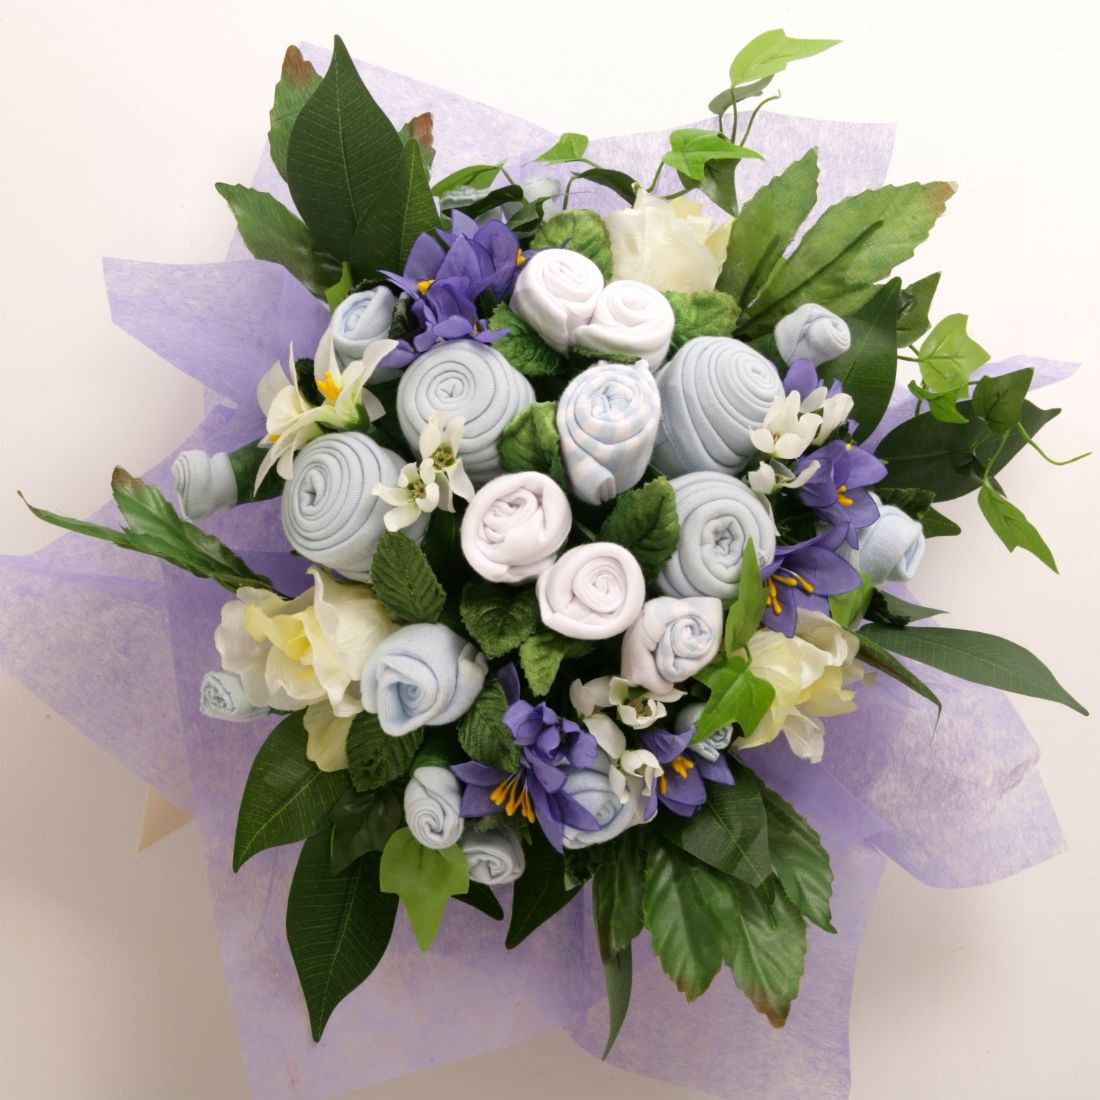 Baby clothes bouquet a flower arrangement made from rolled up baby a refreshing and gorgeous alternative to baby flowers baby clothes bouquets or baby grow bouquets last a lot longer and offer practicality as well as izmirmasajfo